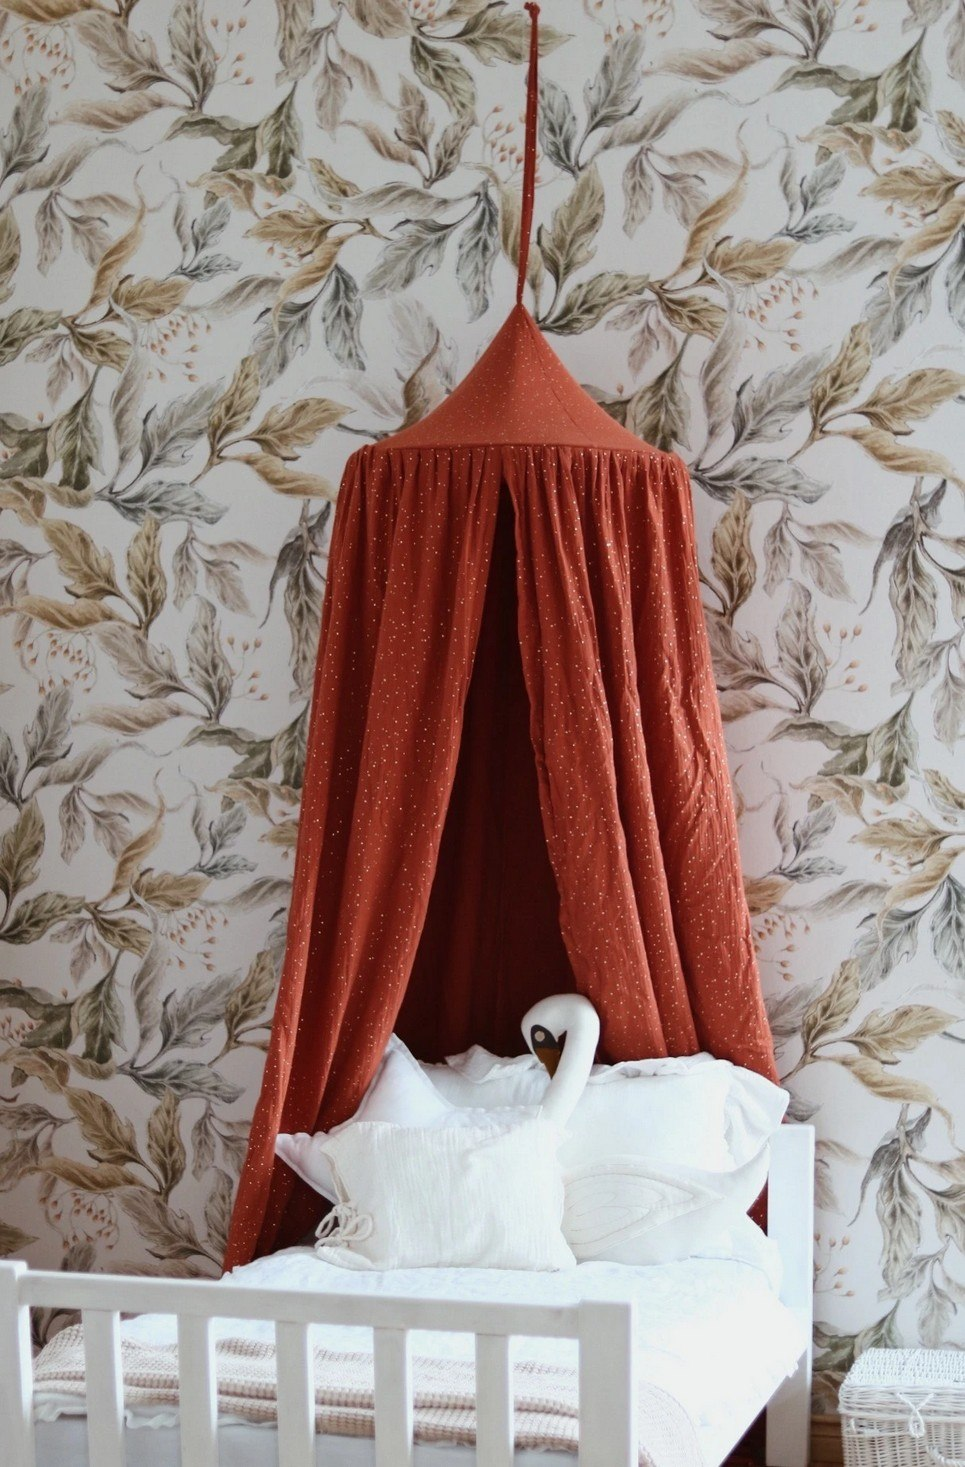 Red Fox Children's Bed Canopy